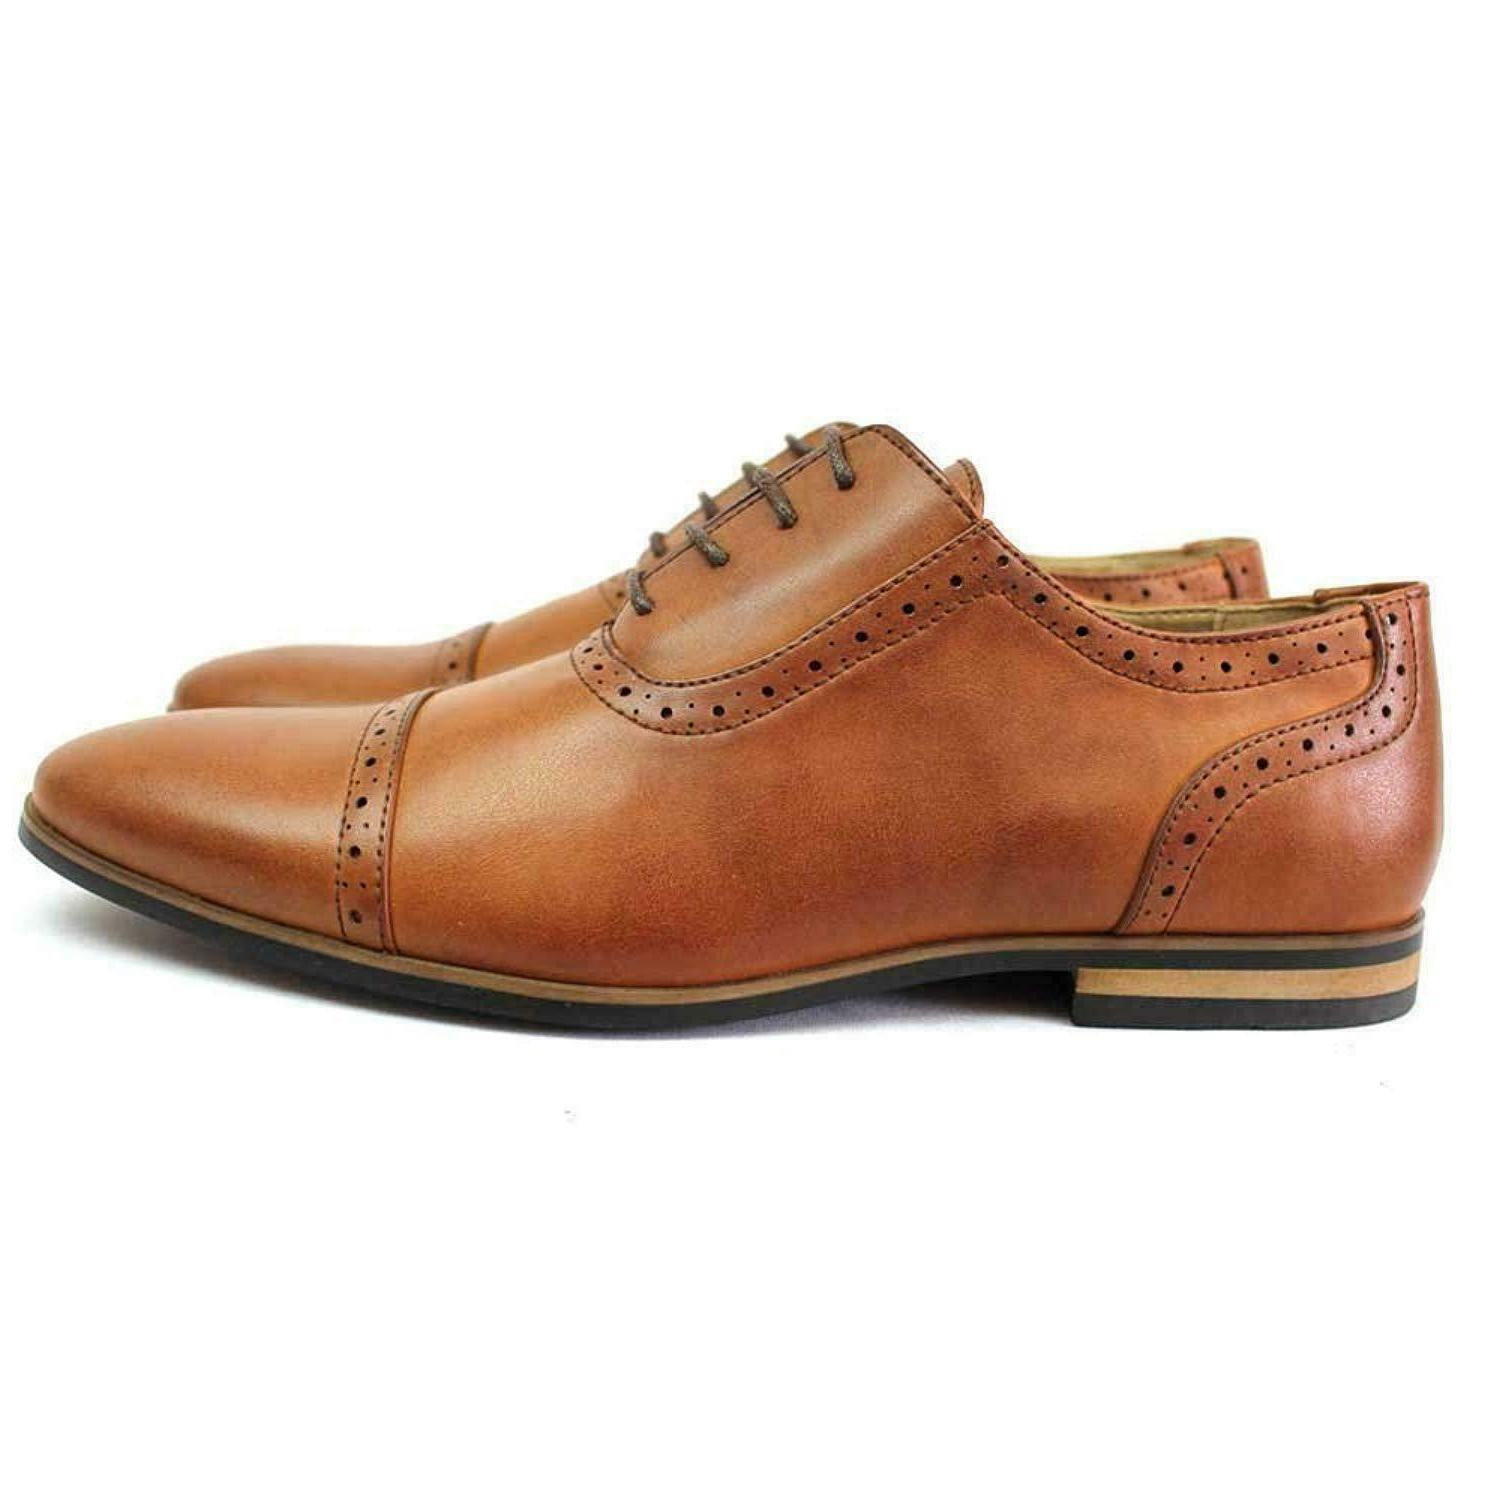 Mens Cognac Dress Shoes Oxfords AZAR MAN